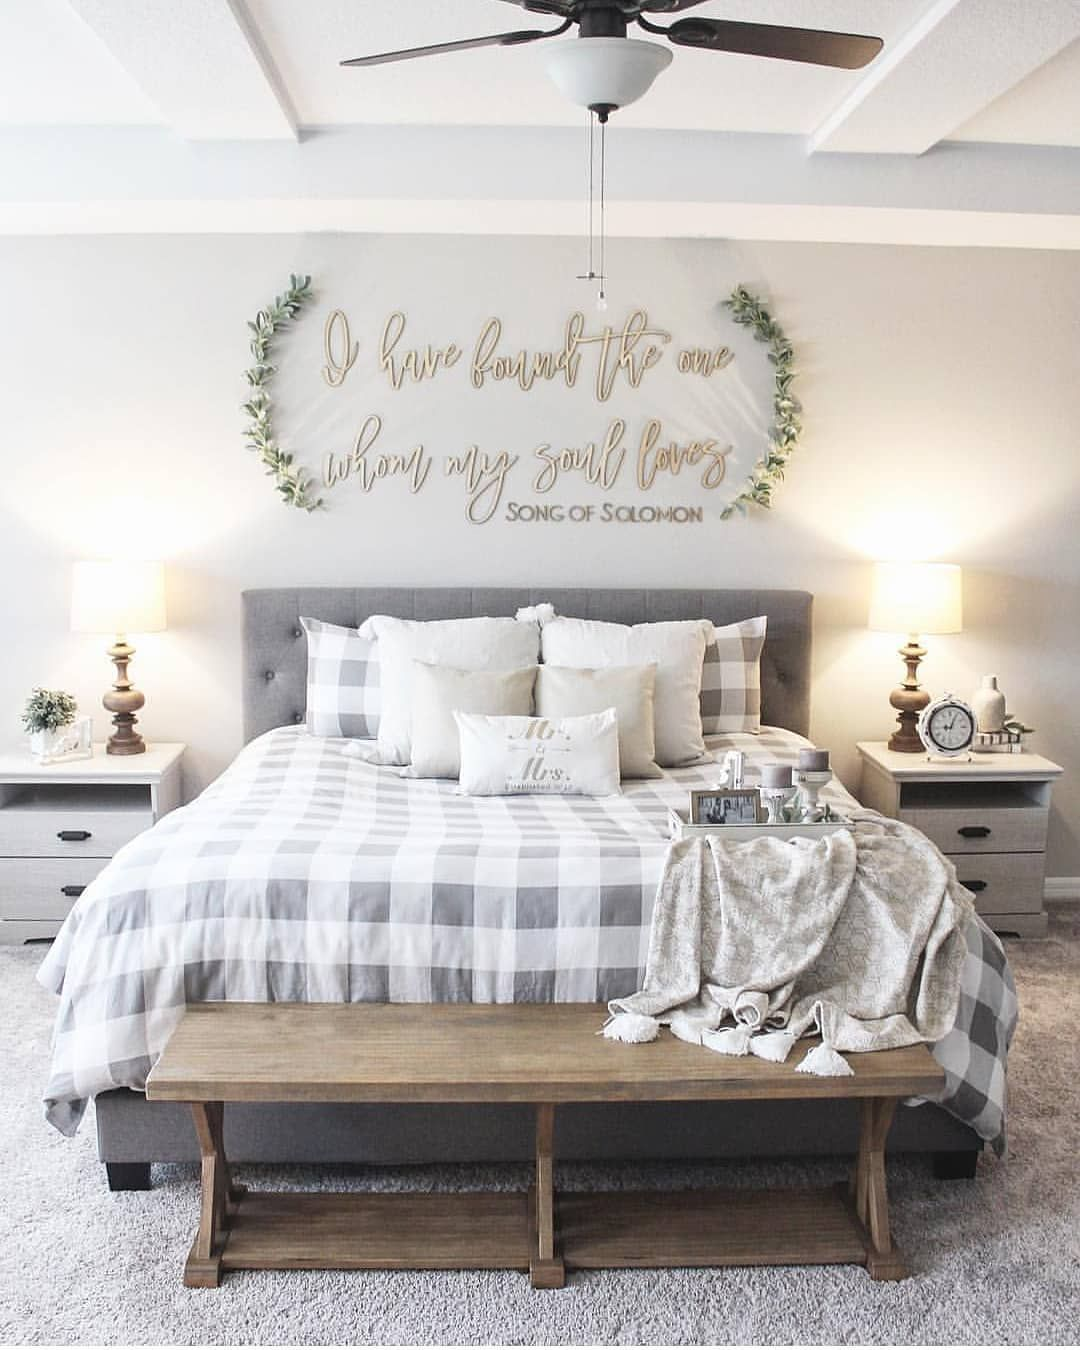 Farmhouse Homes On Instagram This Farmhouse Bedroom Is So